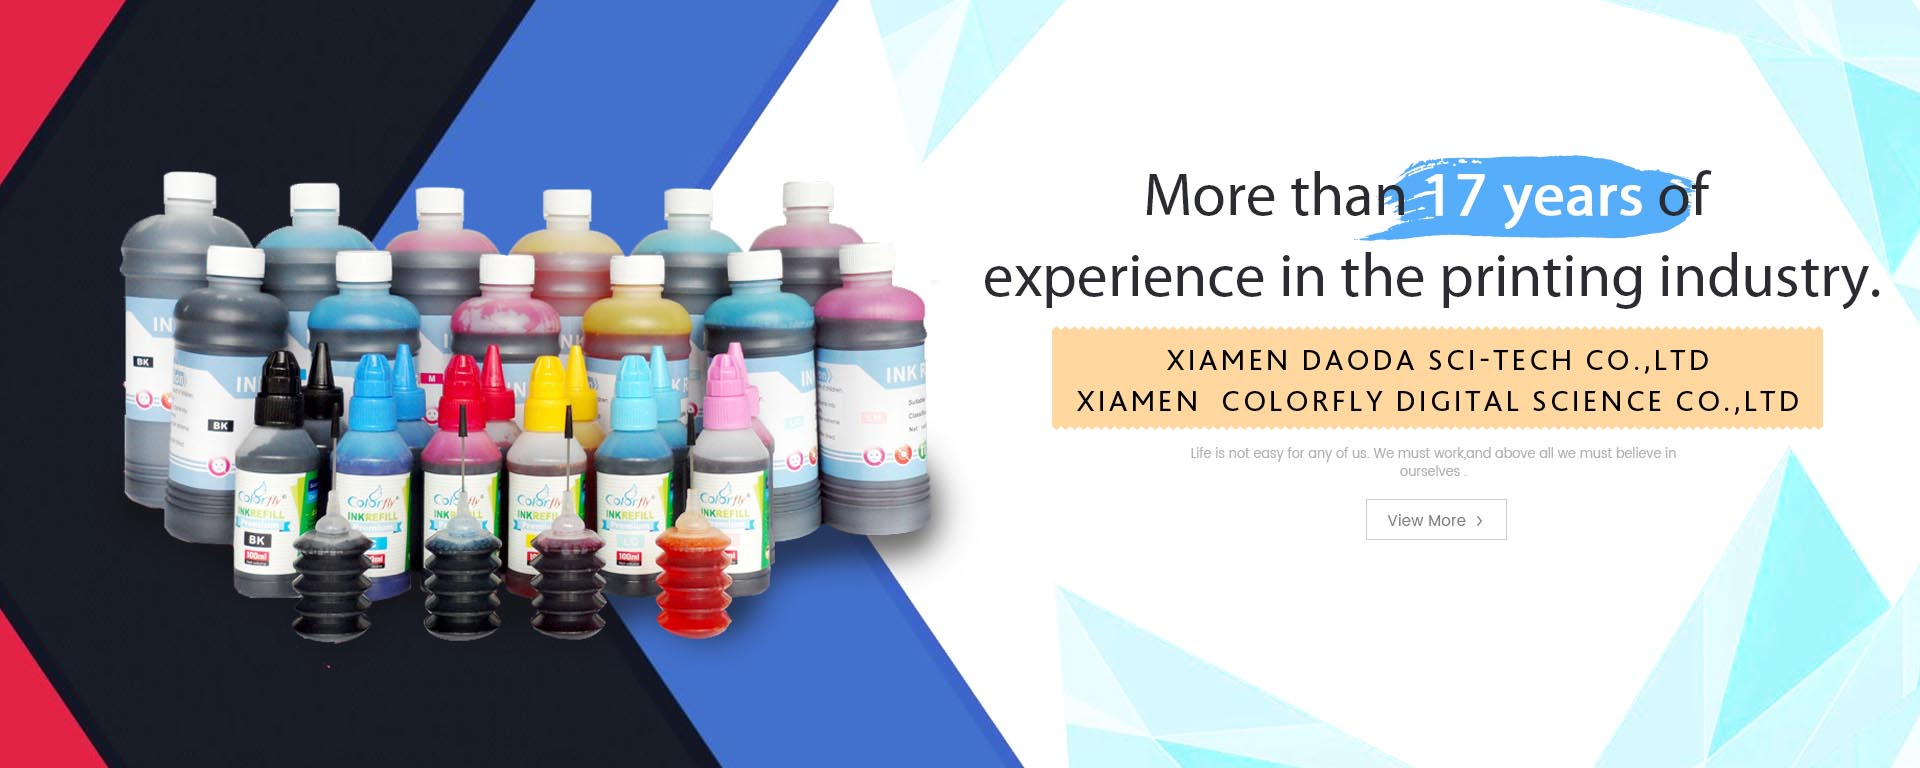 Xiamen Daoda Sci-Tech Co.,Ltd.